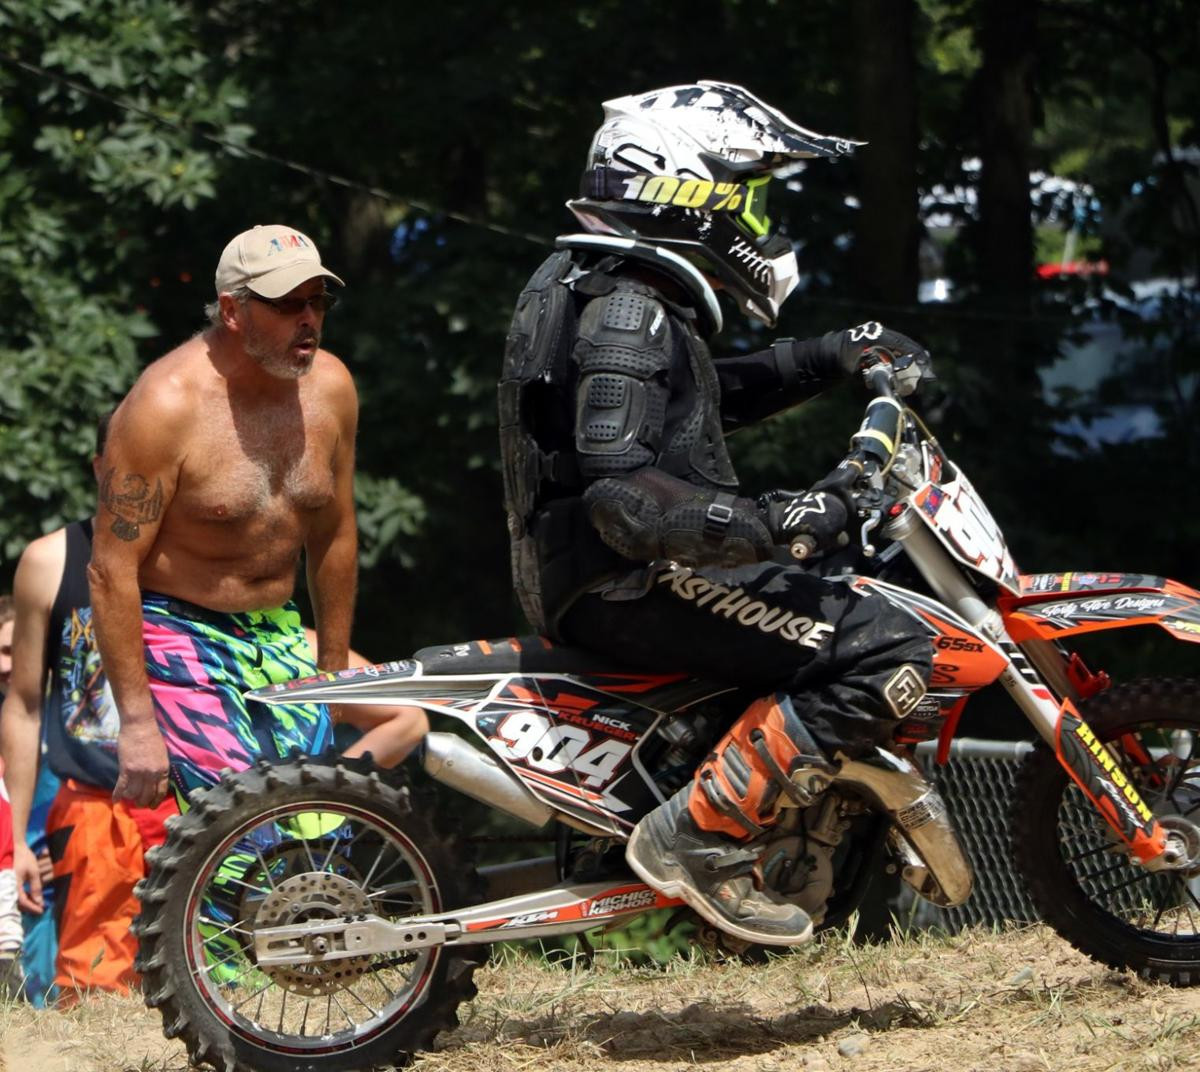 Hillclimb riders looking to keep sport growing, thriving